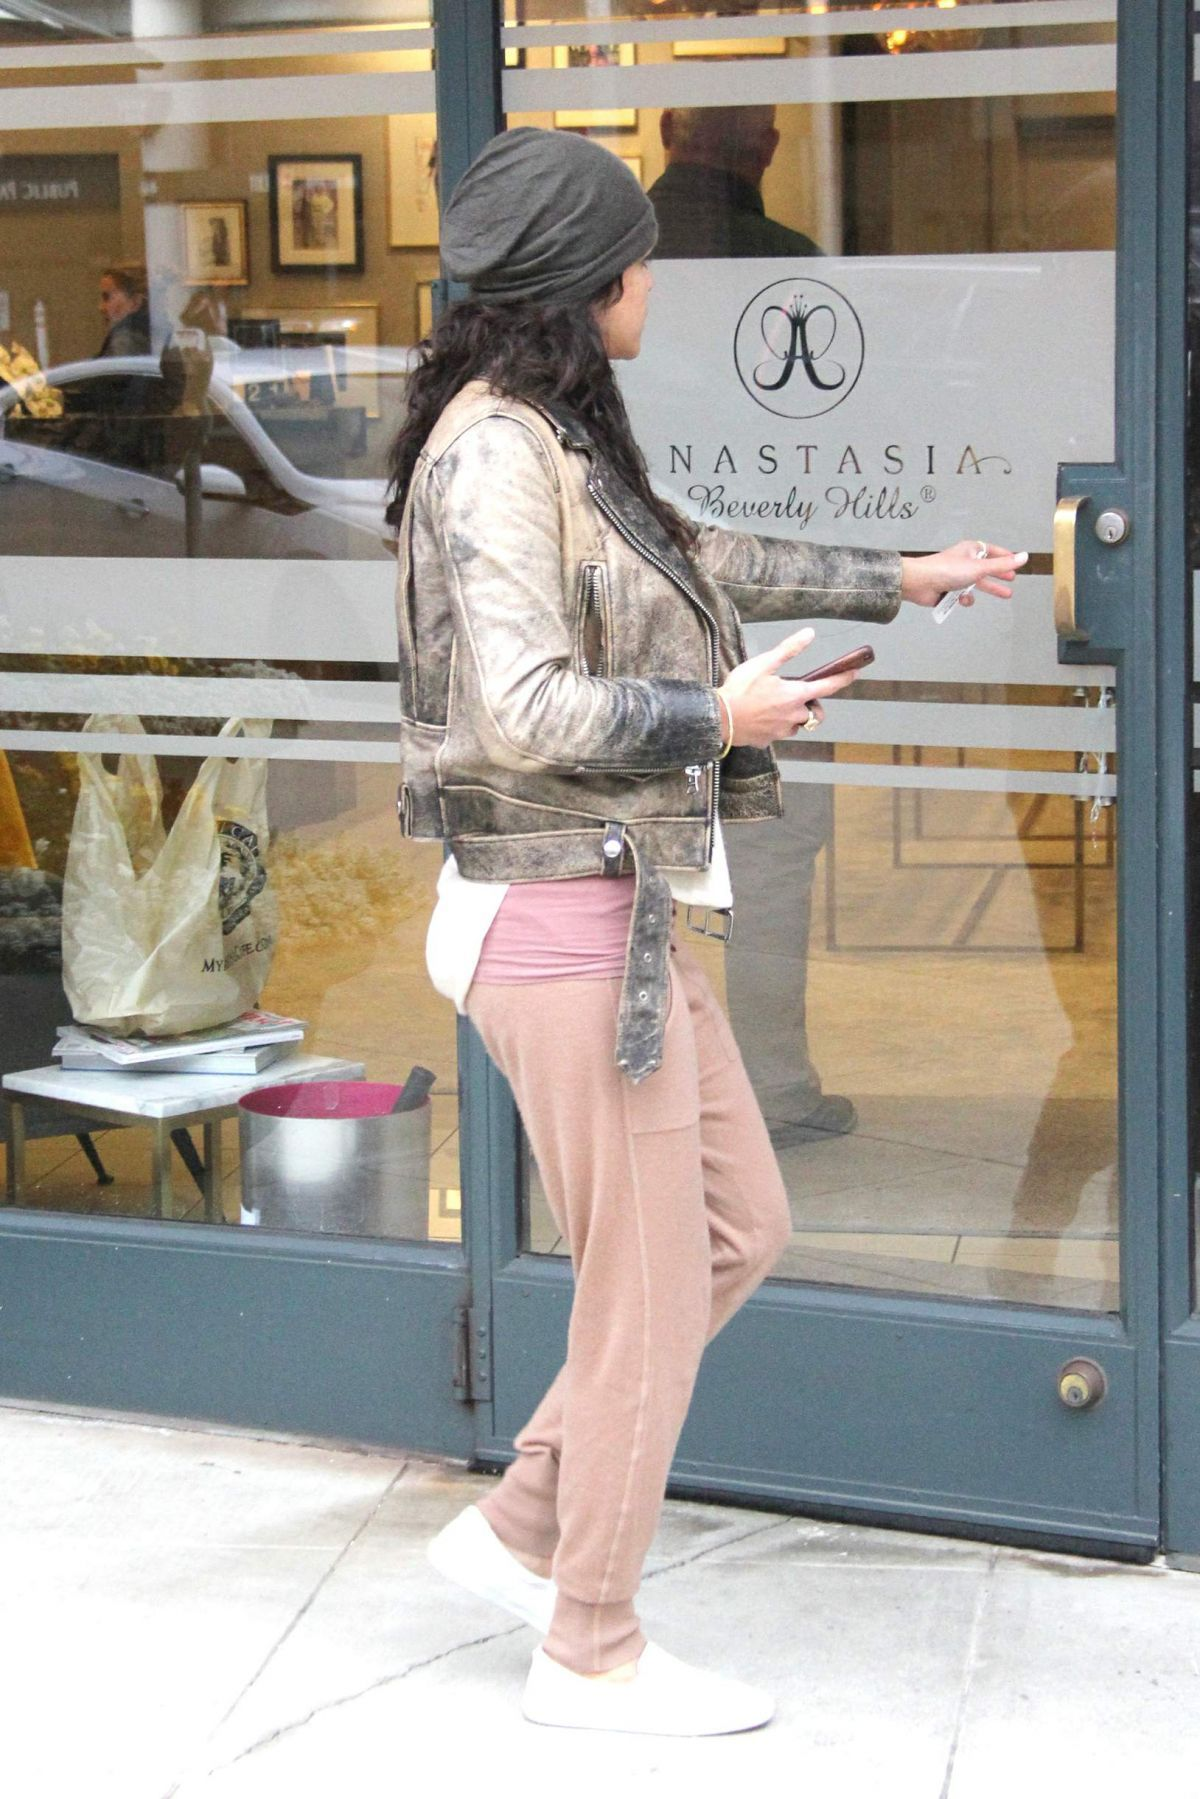 michelle-rodriguez-arrives-at-anastasia-beverly-hills-02-21-2017_10.jpg (1200×1799)